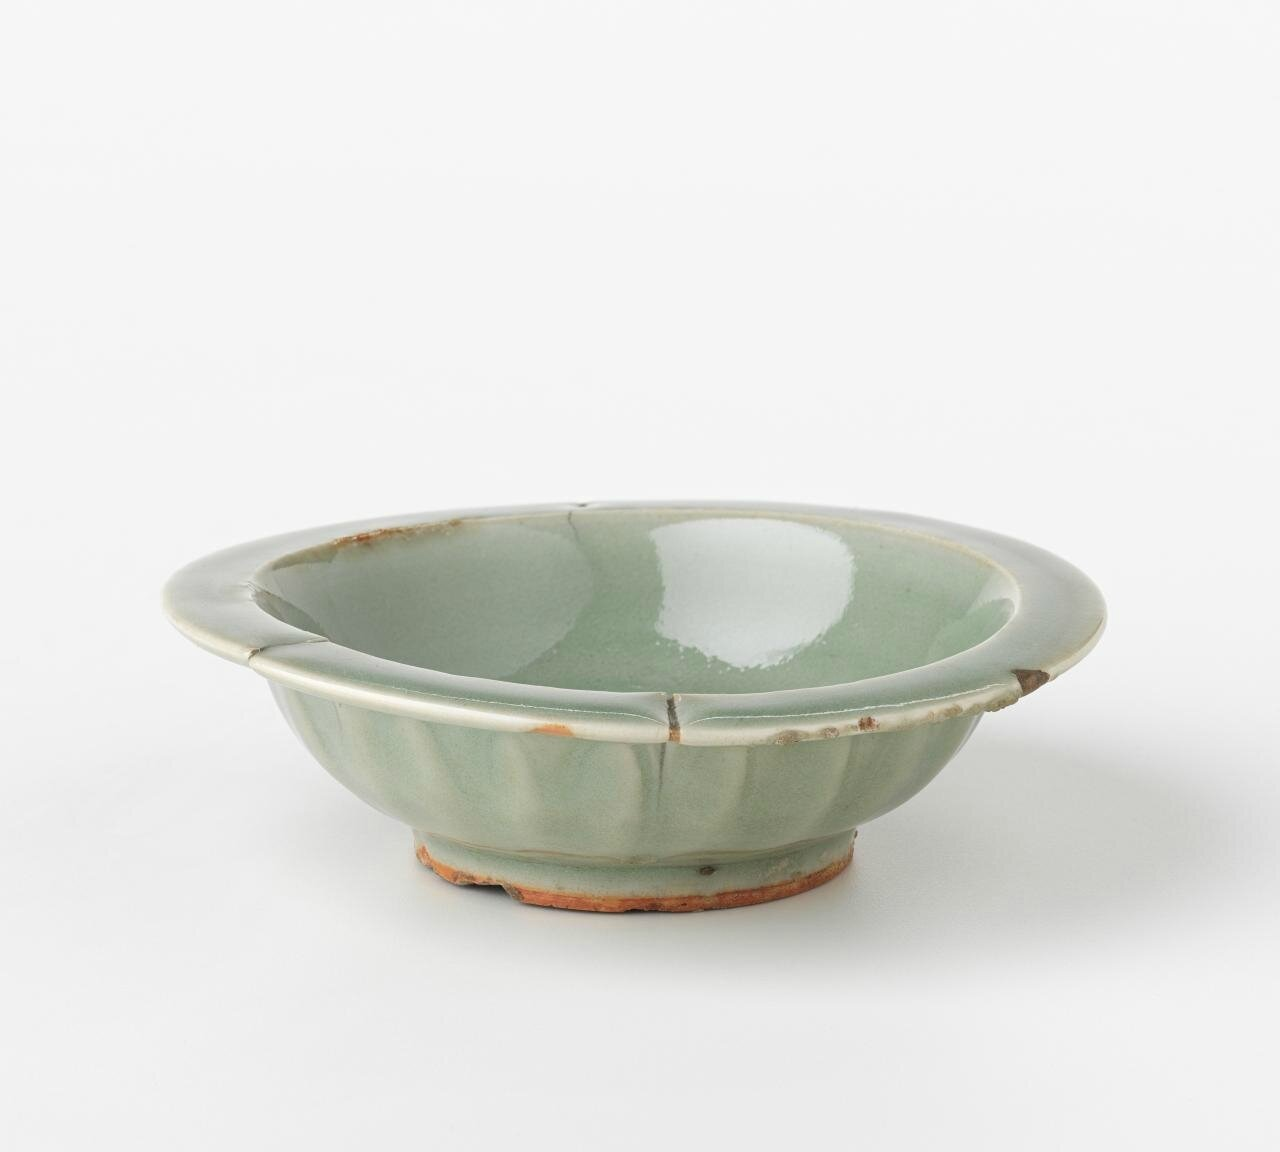 Dish, Song dynasty, 960 CE-1279, Longquan ware